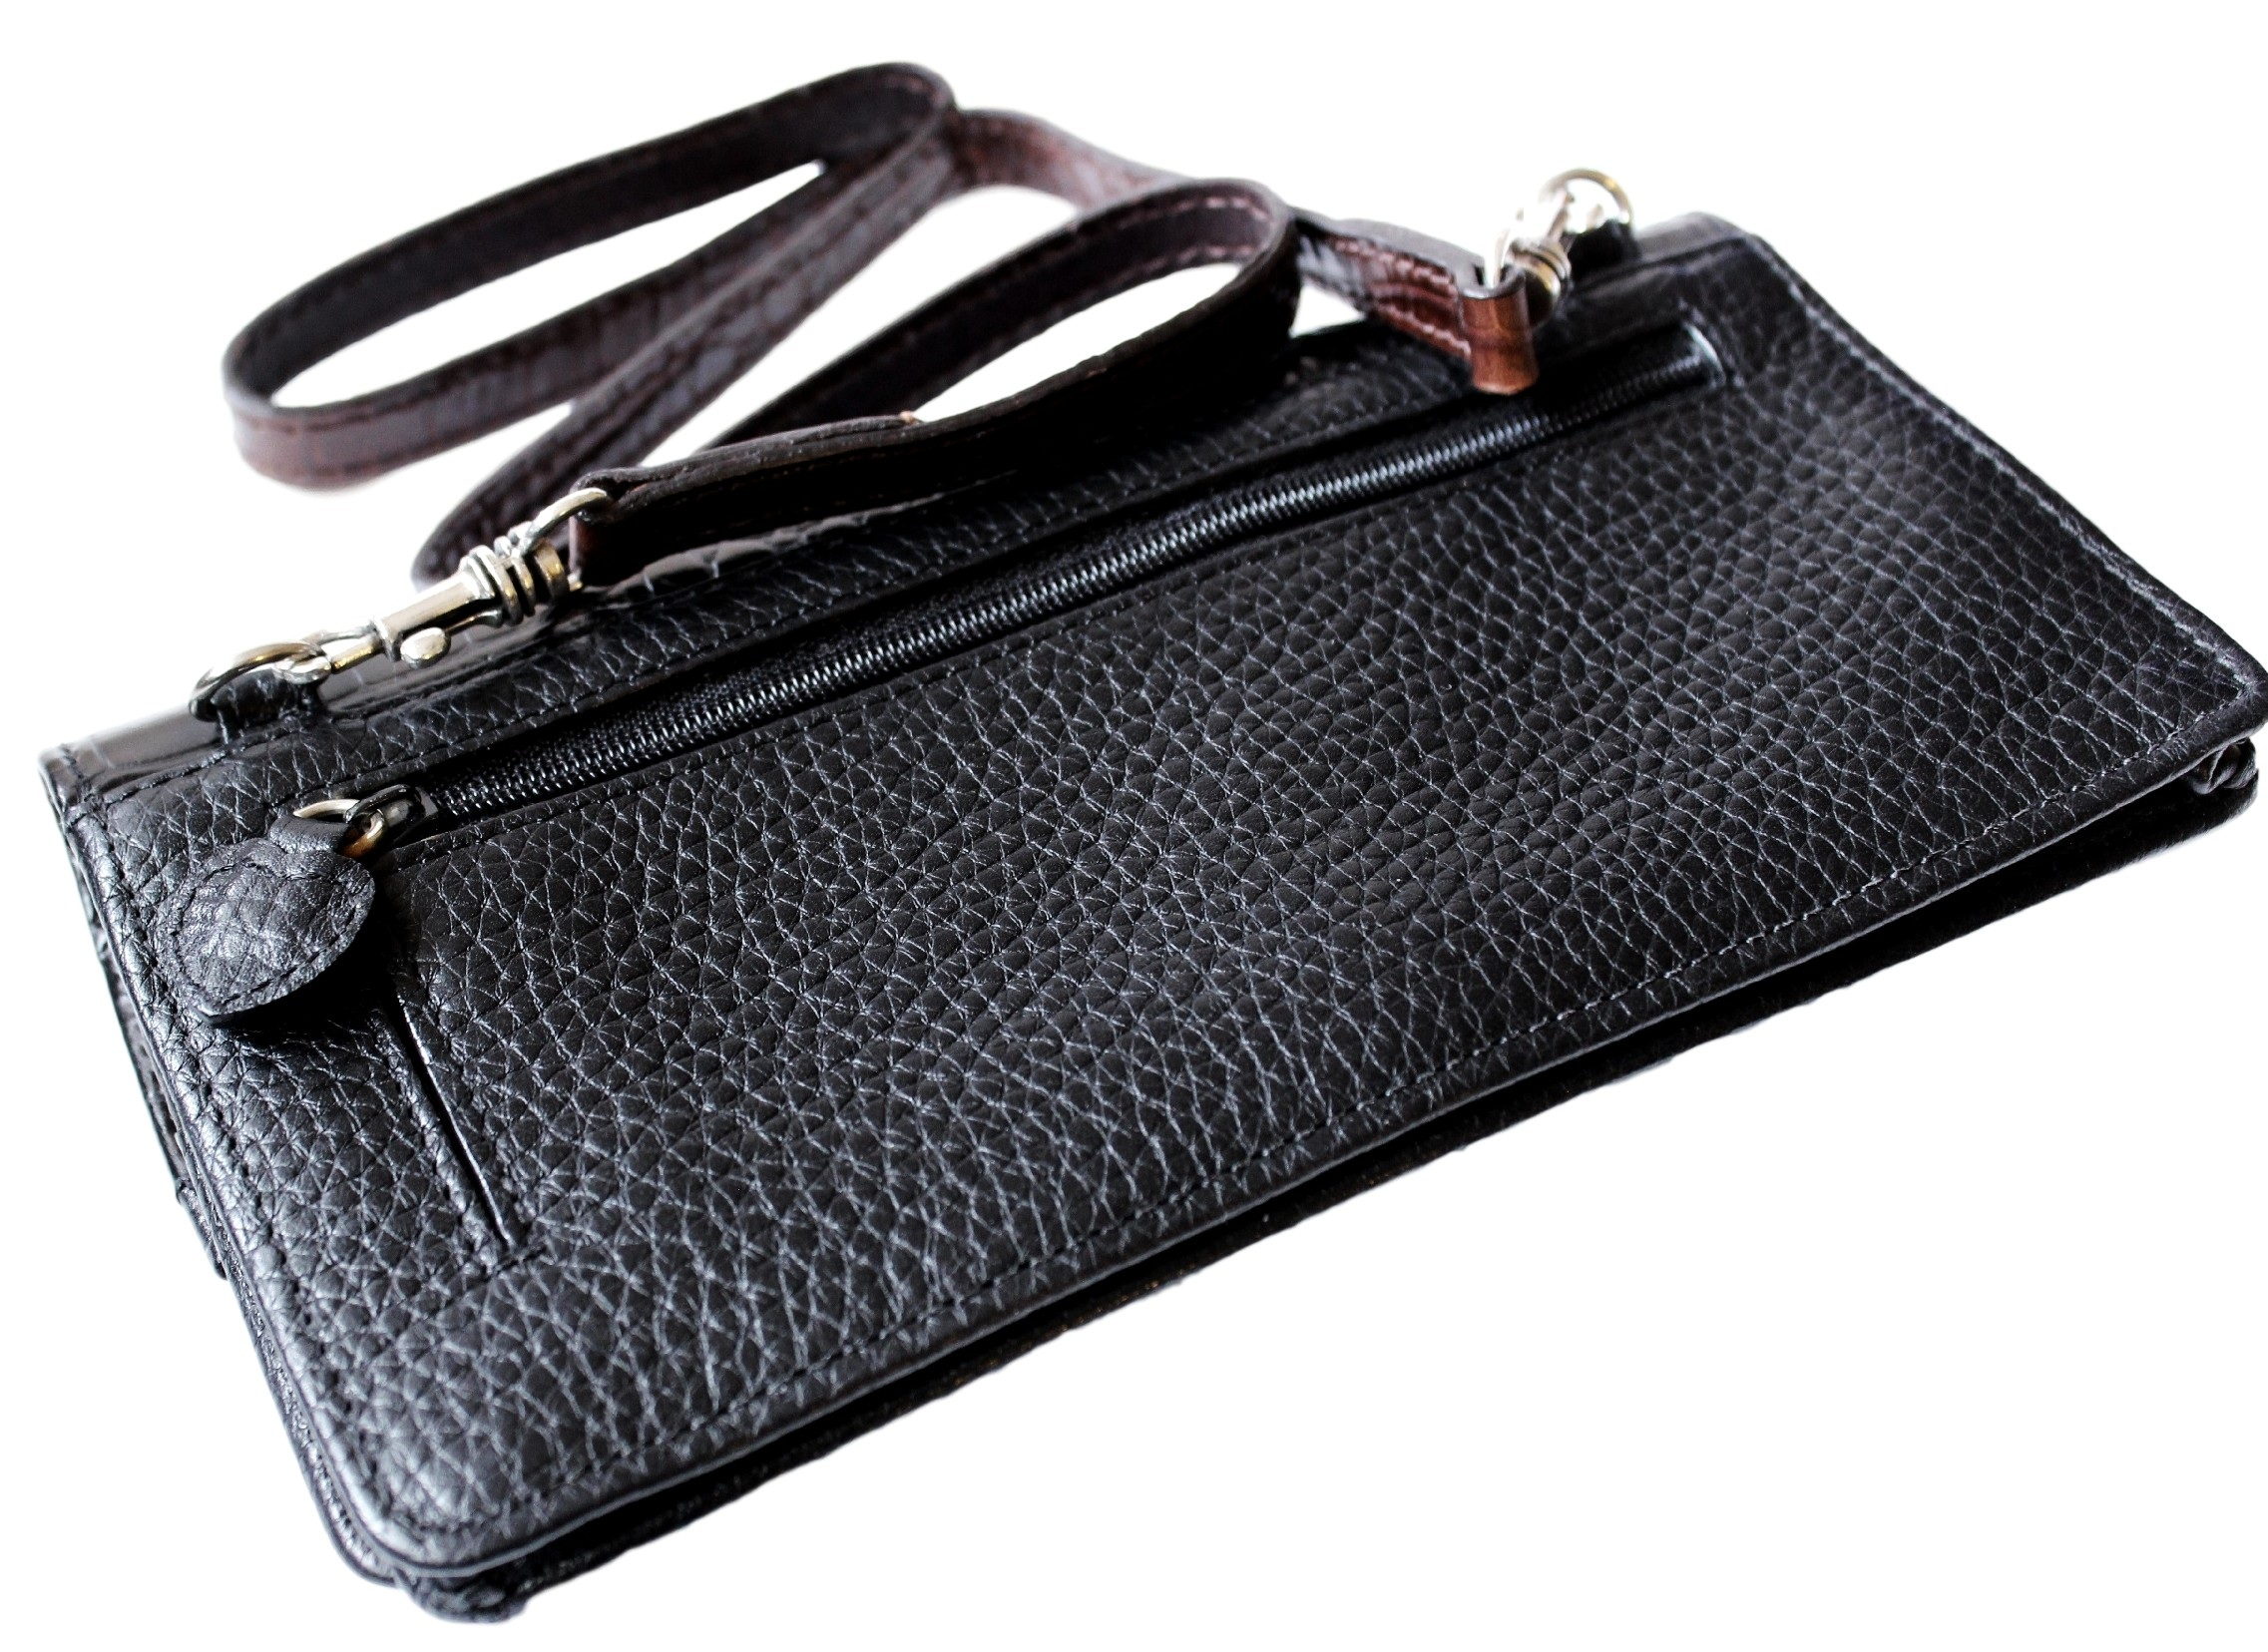 Main Difference - Purse vs Wallet